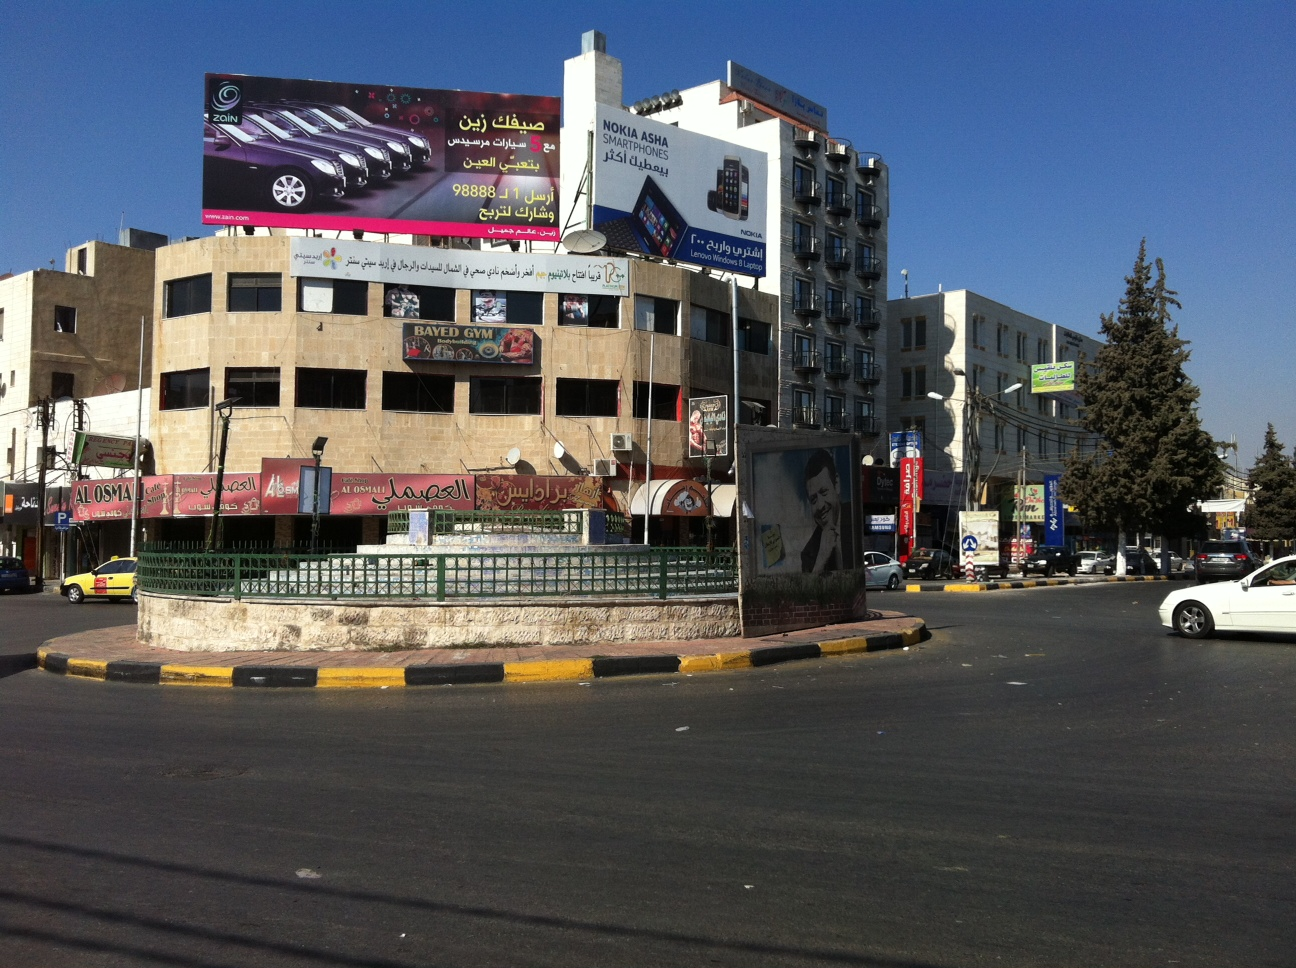 Le centre-ville d'Irbid en Jordanie. www.merblanche.com all rights reserved